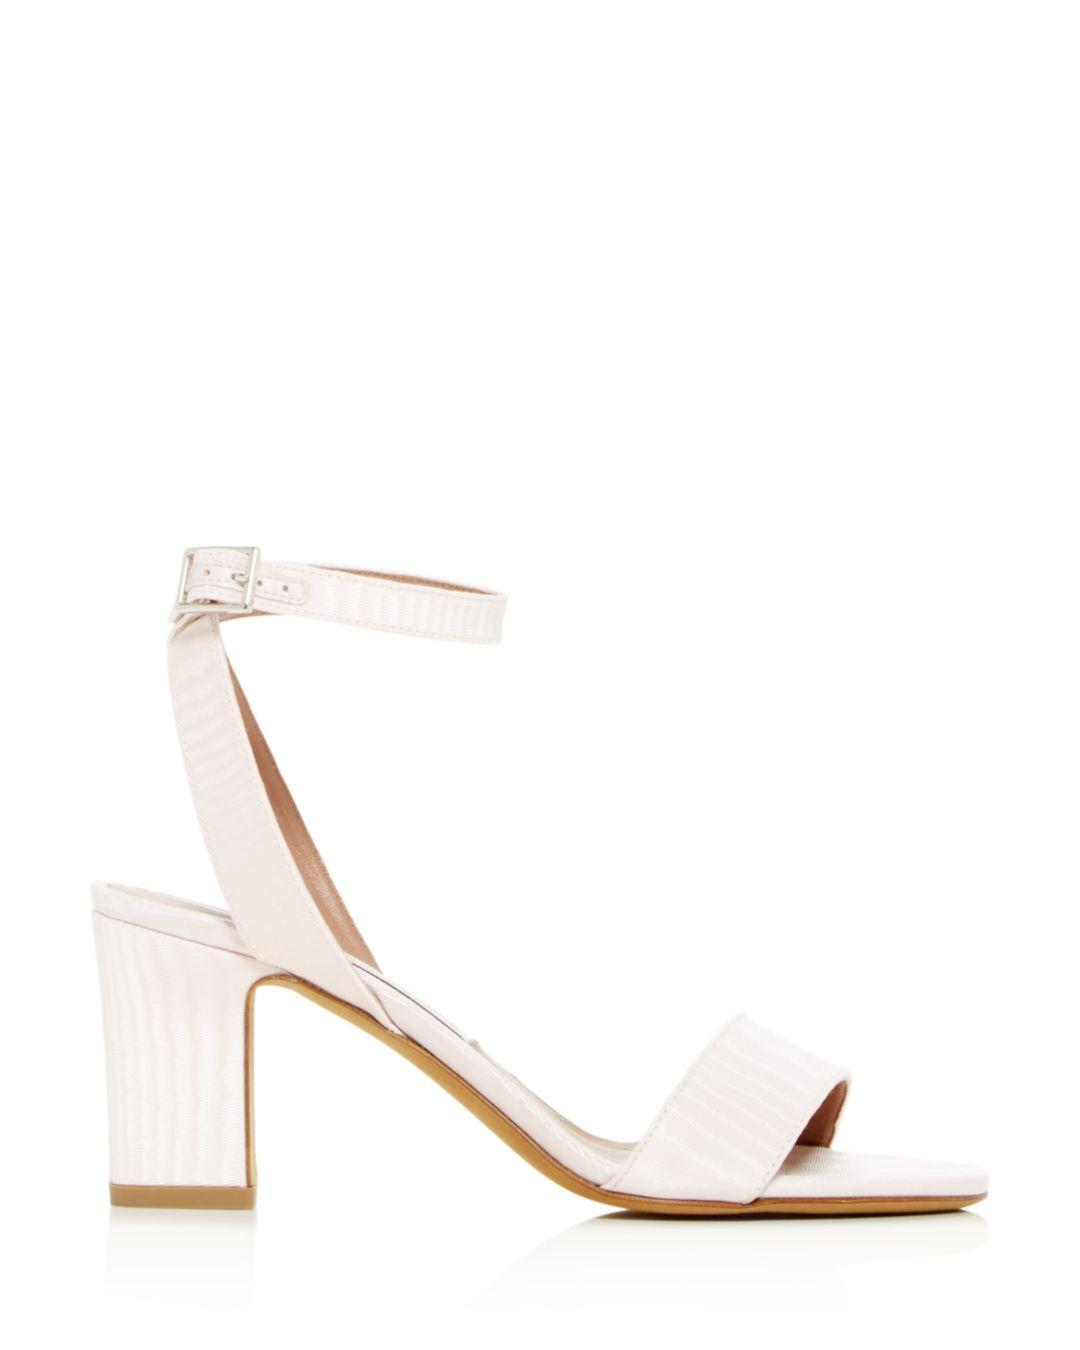 456fed20d159 Lyst - Tabitha Simmons Women s Leticia Ankle Strap Block-heel Sandals